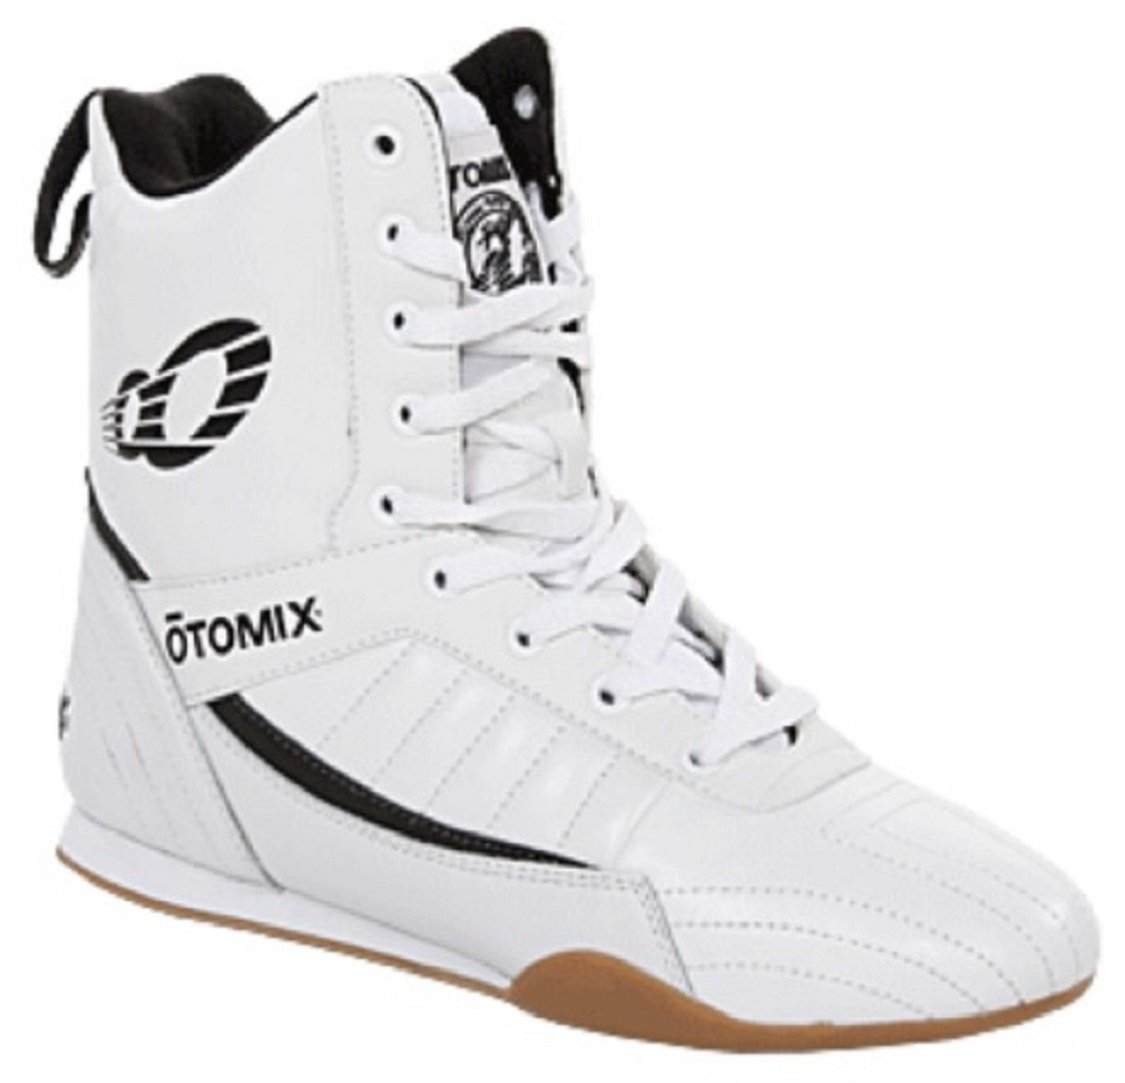 The Best Boxing Shoes